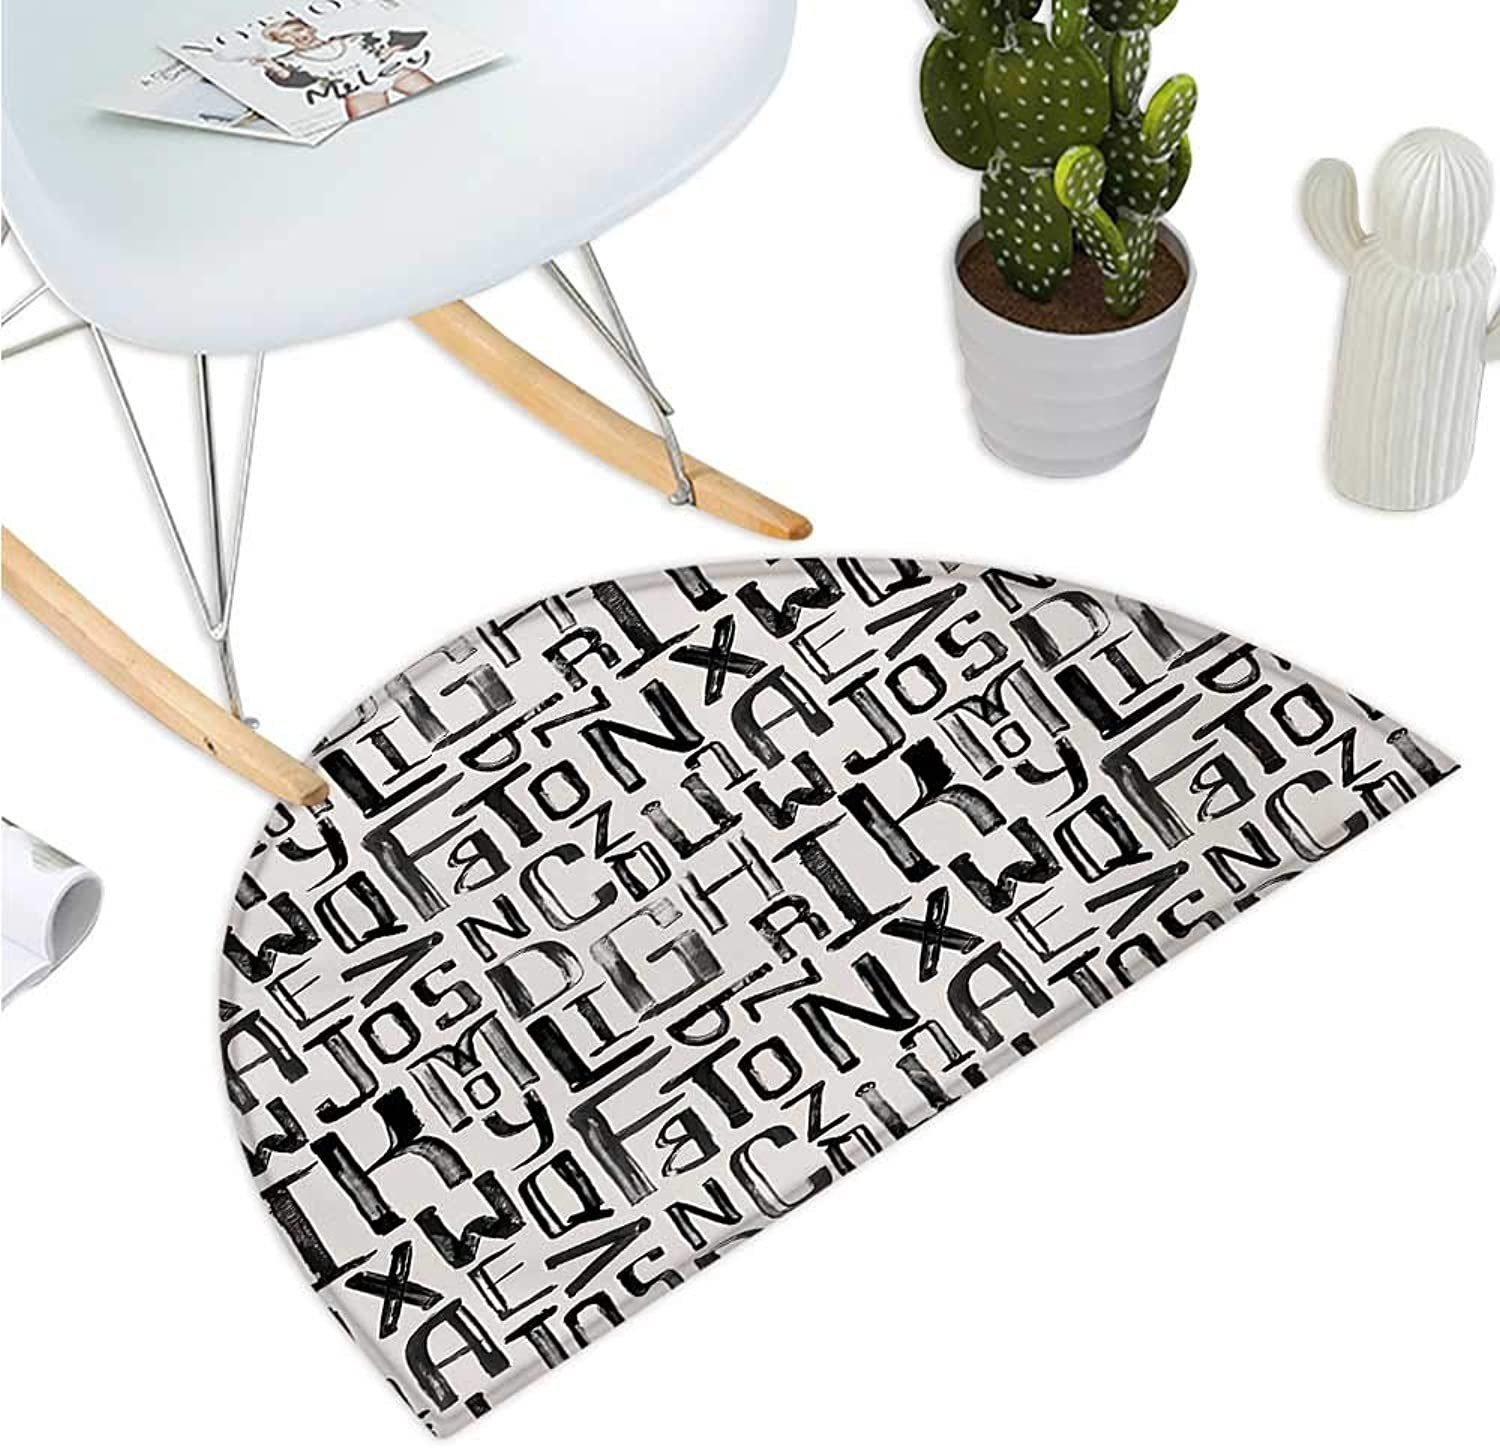 Grunge Semicircular Cushion Artsy Small Large Grunge Letters in Random Sizes Pattern Alphabet Modern Entry Door Mat H 43.3  xD 64.9  Charcoal Grey White